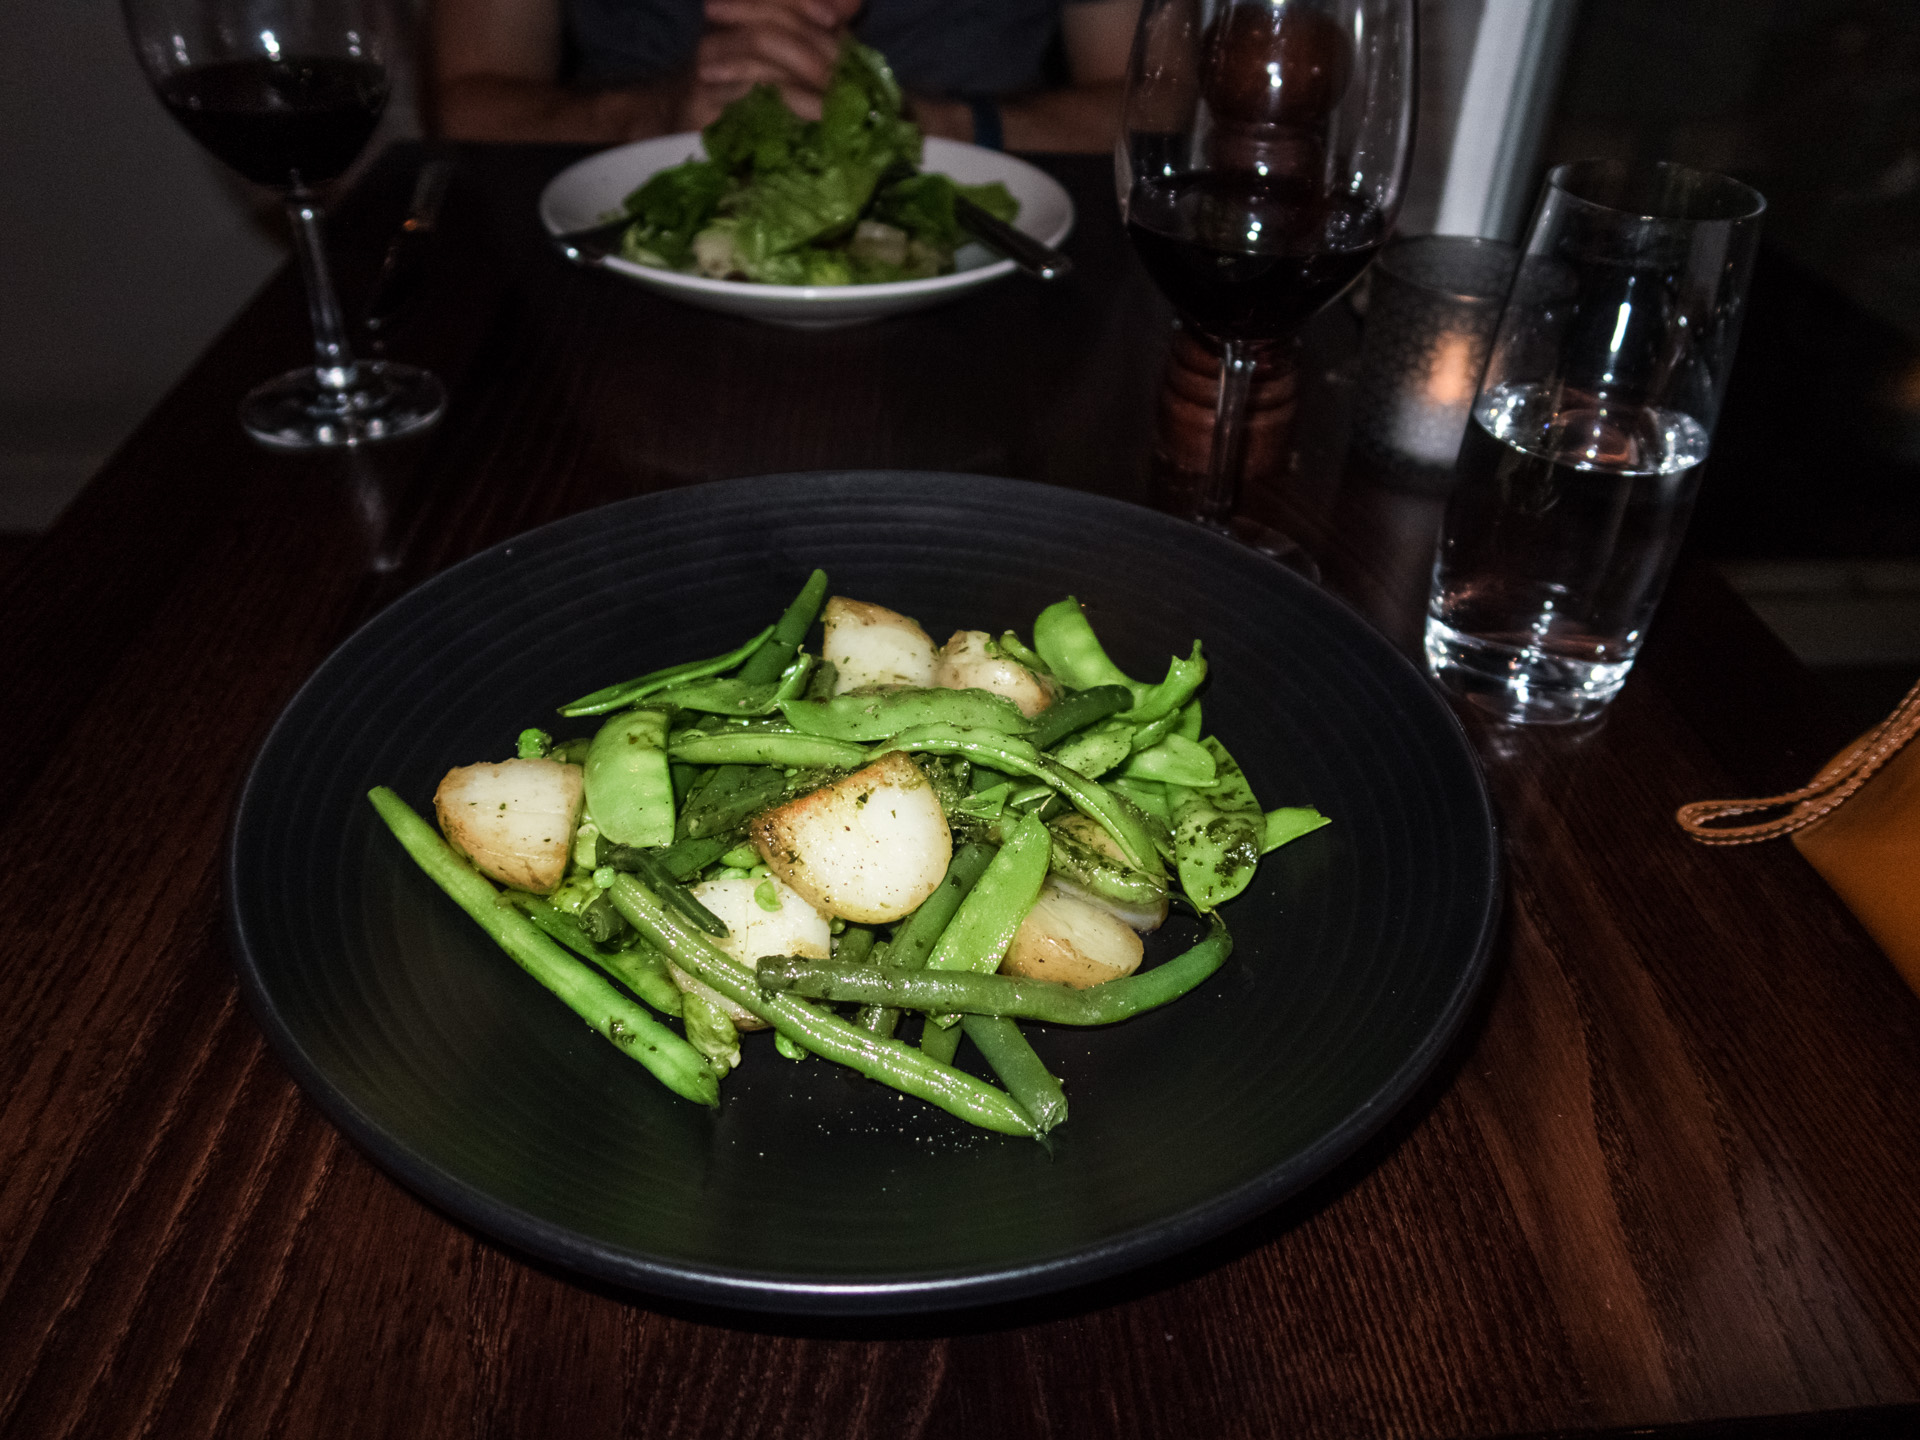 Dinner at Bistro Lago - Taupo. Roasted vegetables featuring snow peas, green beans and potatoes